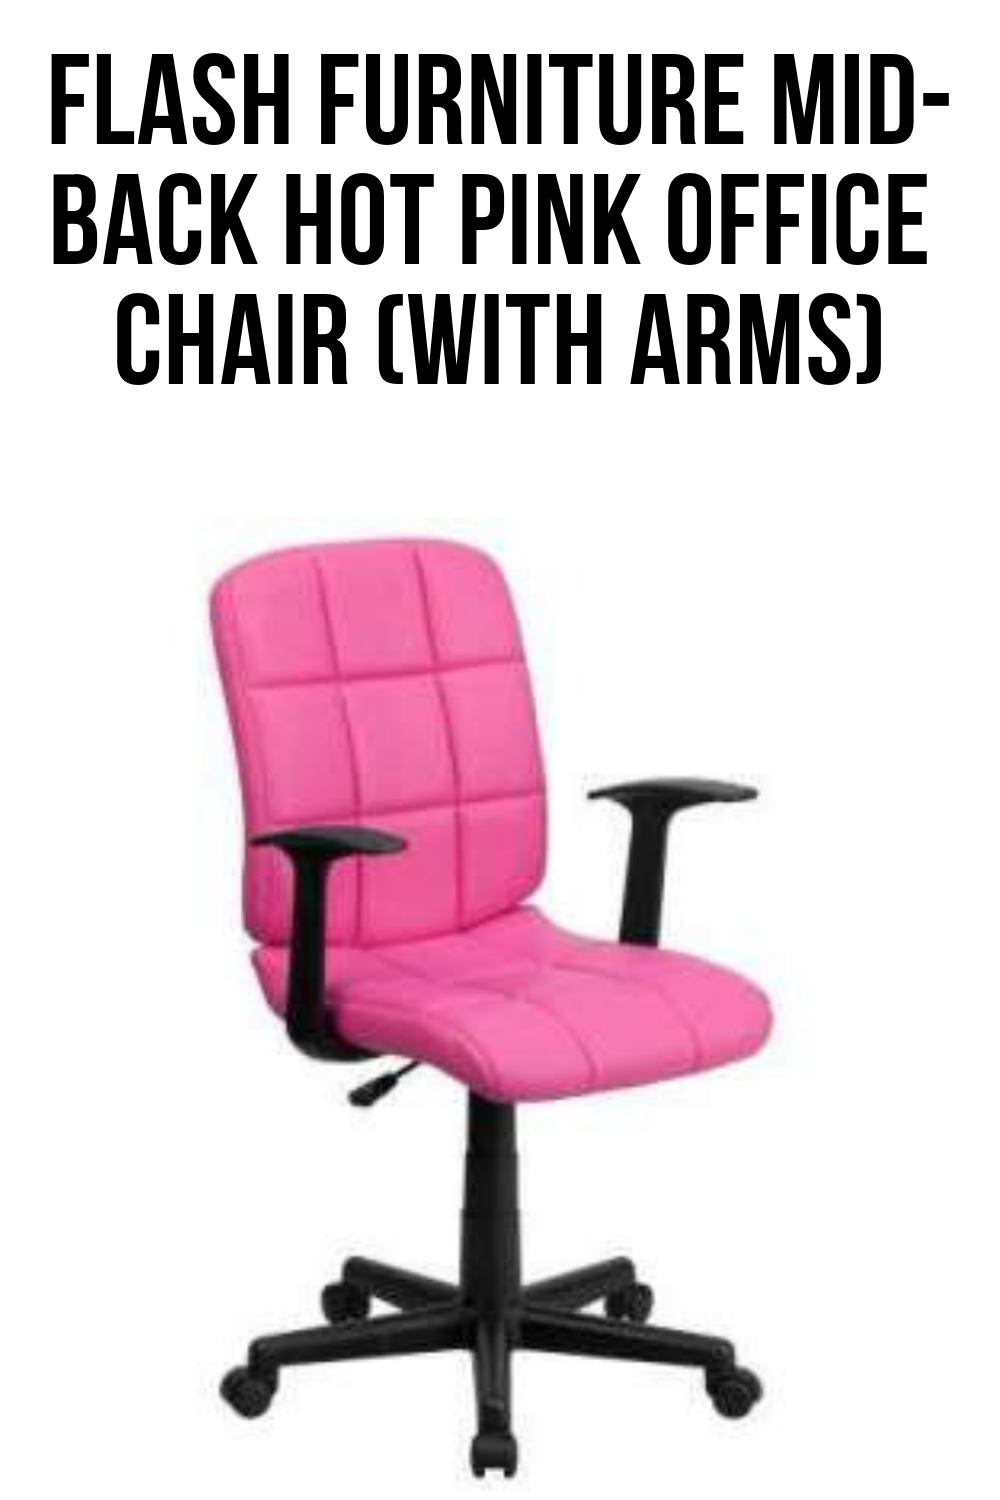 Pink Office Chairs Round Up The Best Pink Desk Chair Desk Chairs Pink Desk Chair